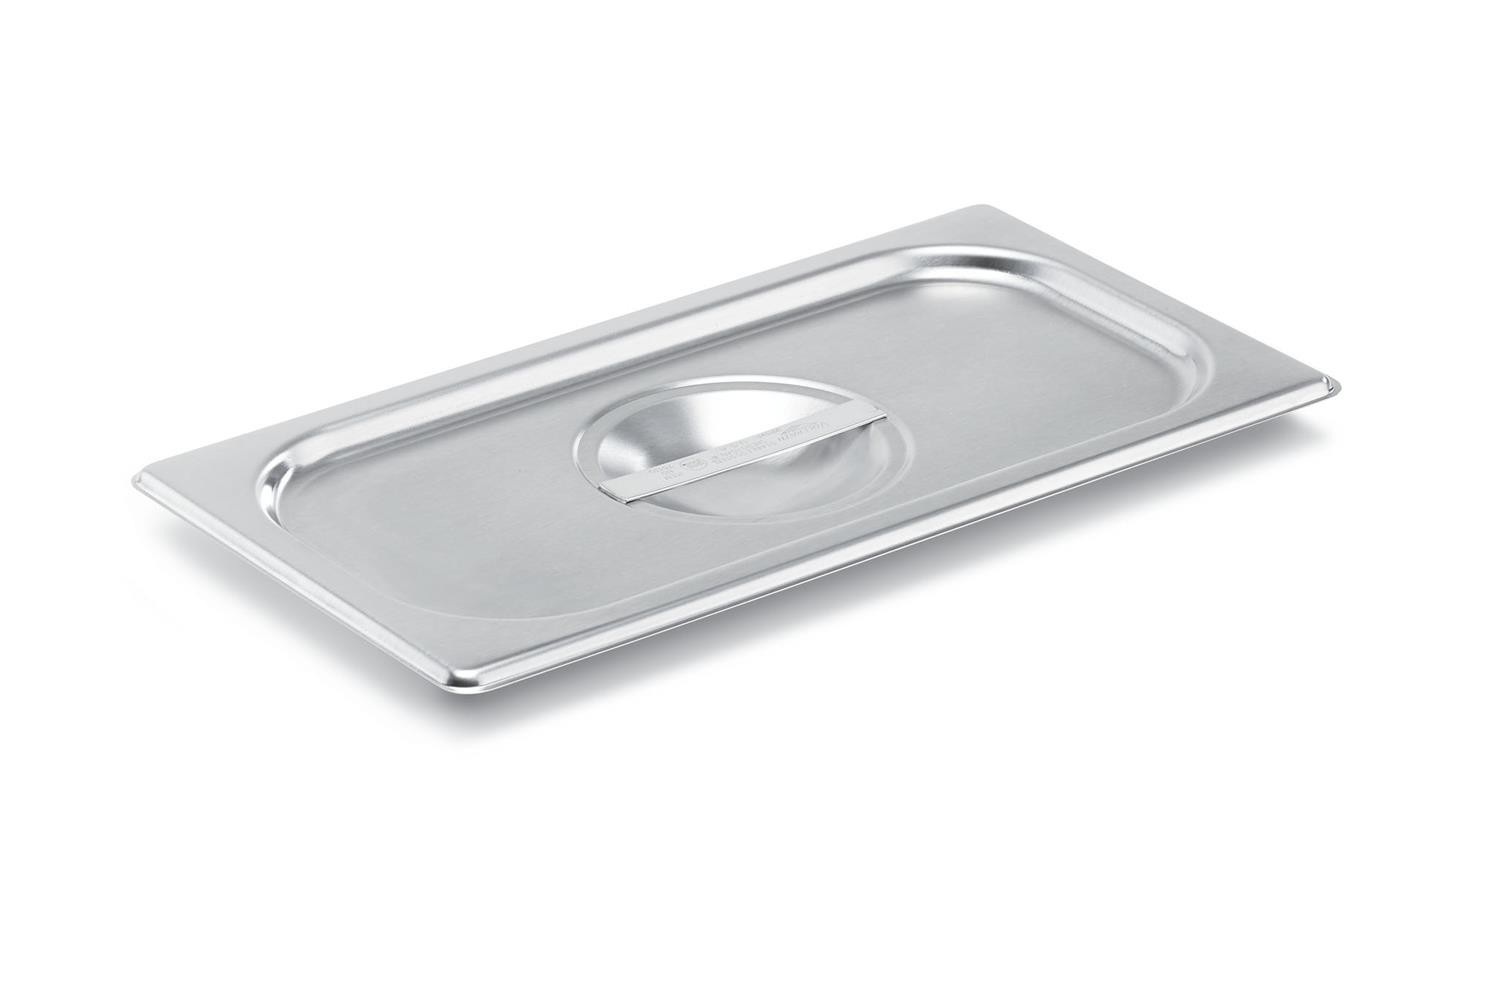 Vollrath 75130 Stainless Steel Pan Cover